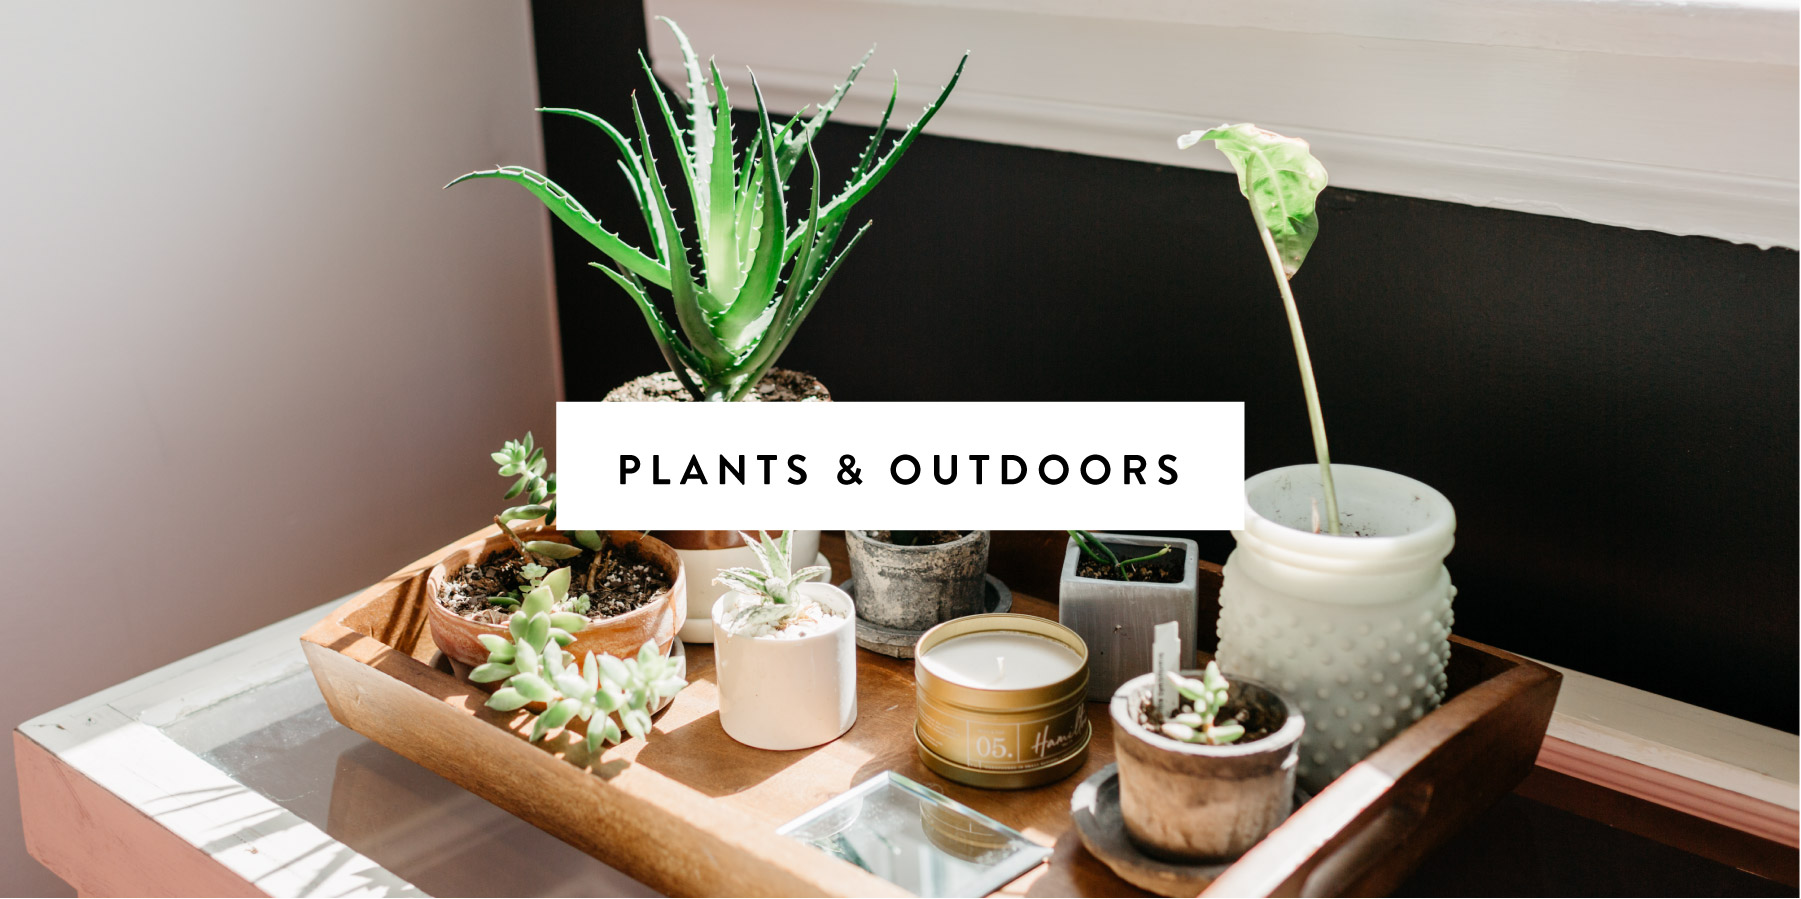 Plants & Outdoors-01.jpg